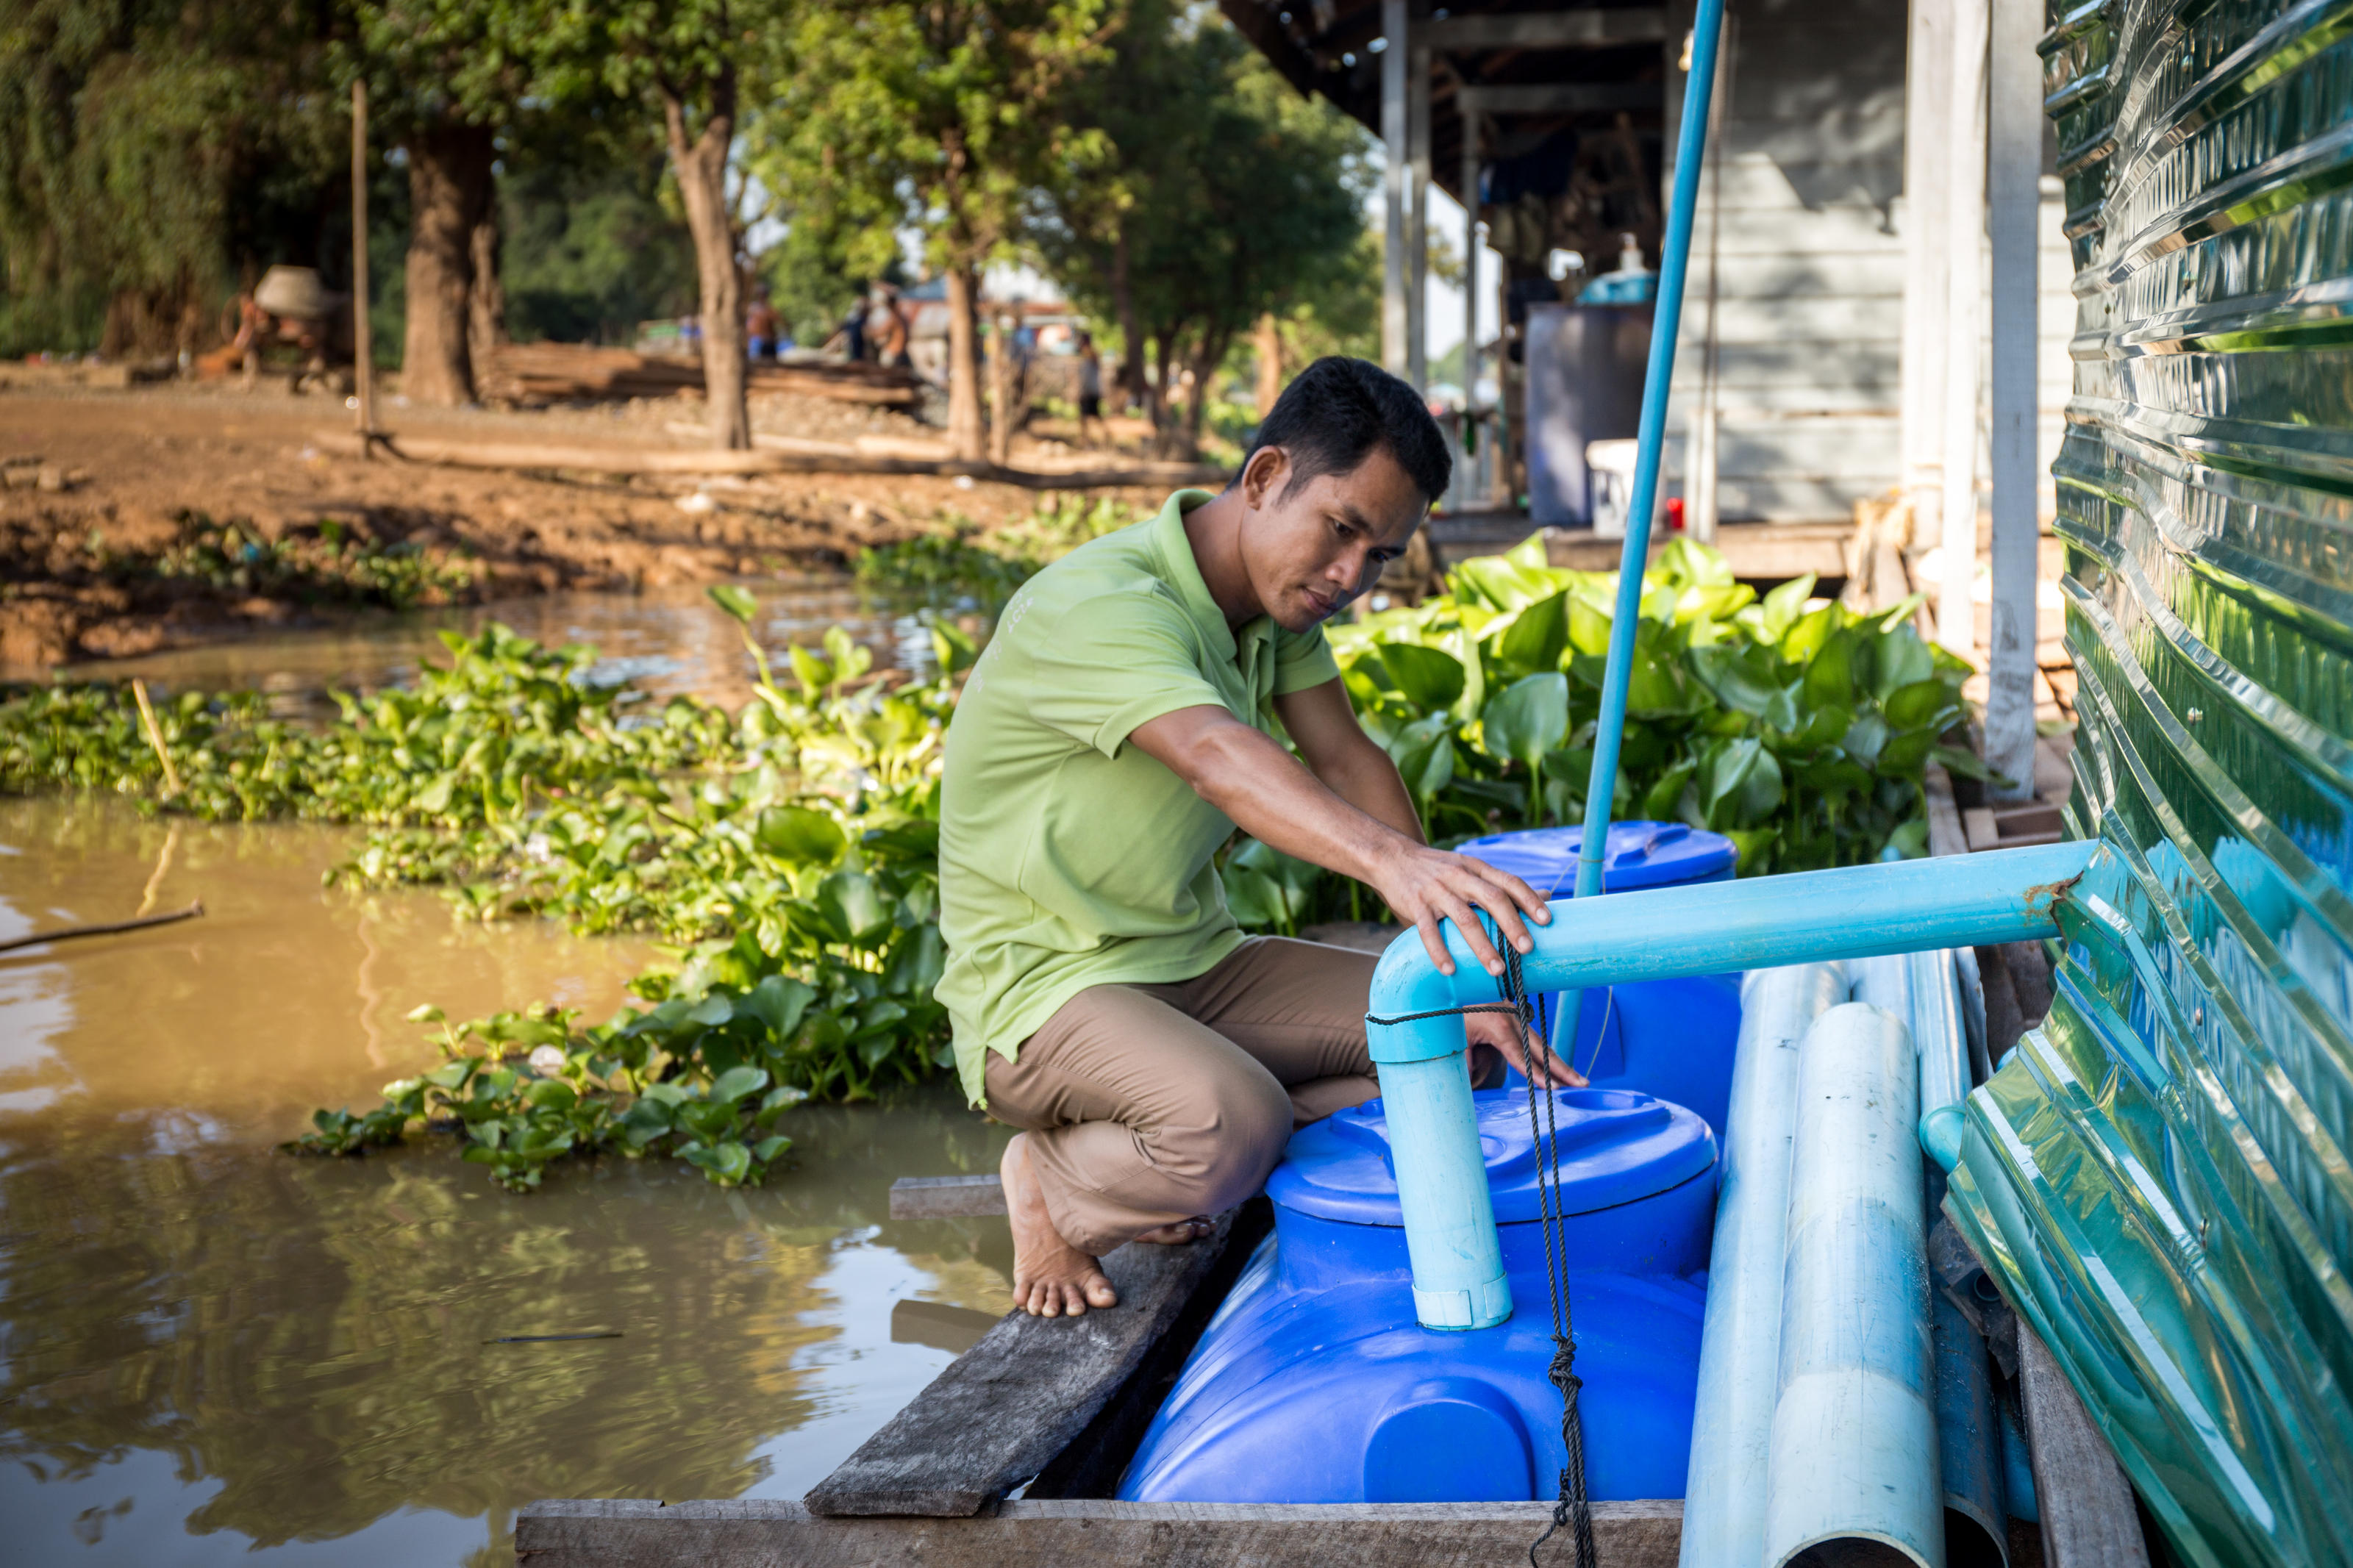 Ke Hakley, 37, with his modified amphibious HandyPod design, at home in the Phat Sanday floating village, Sturng Sen River, Tonle Sap Lake, Cambodia, Feb 2017